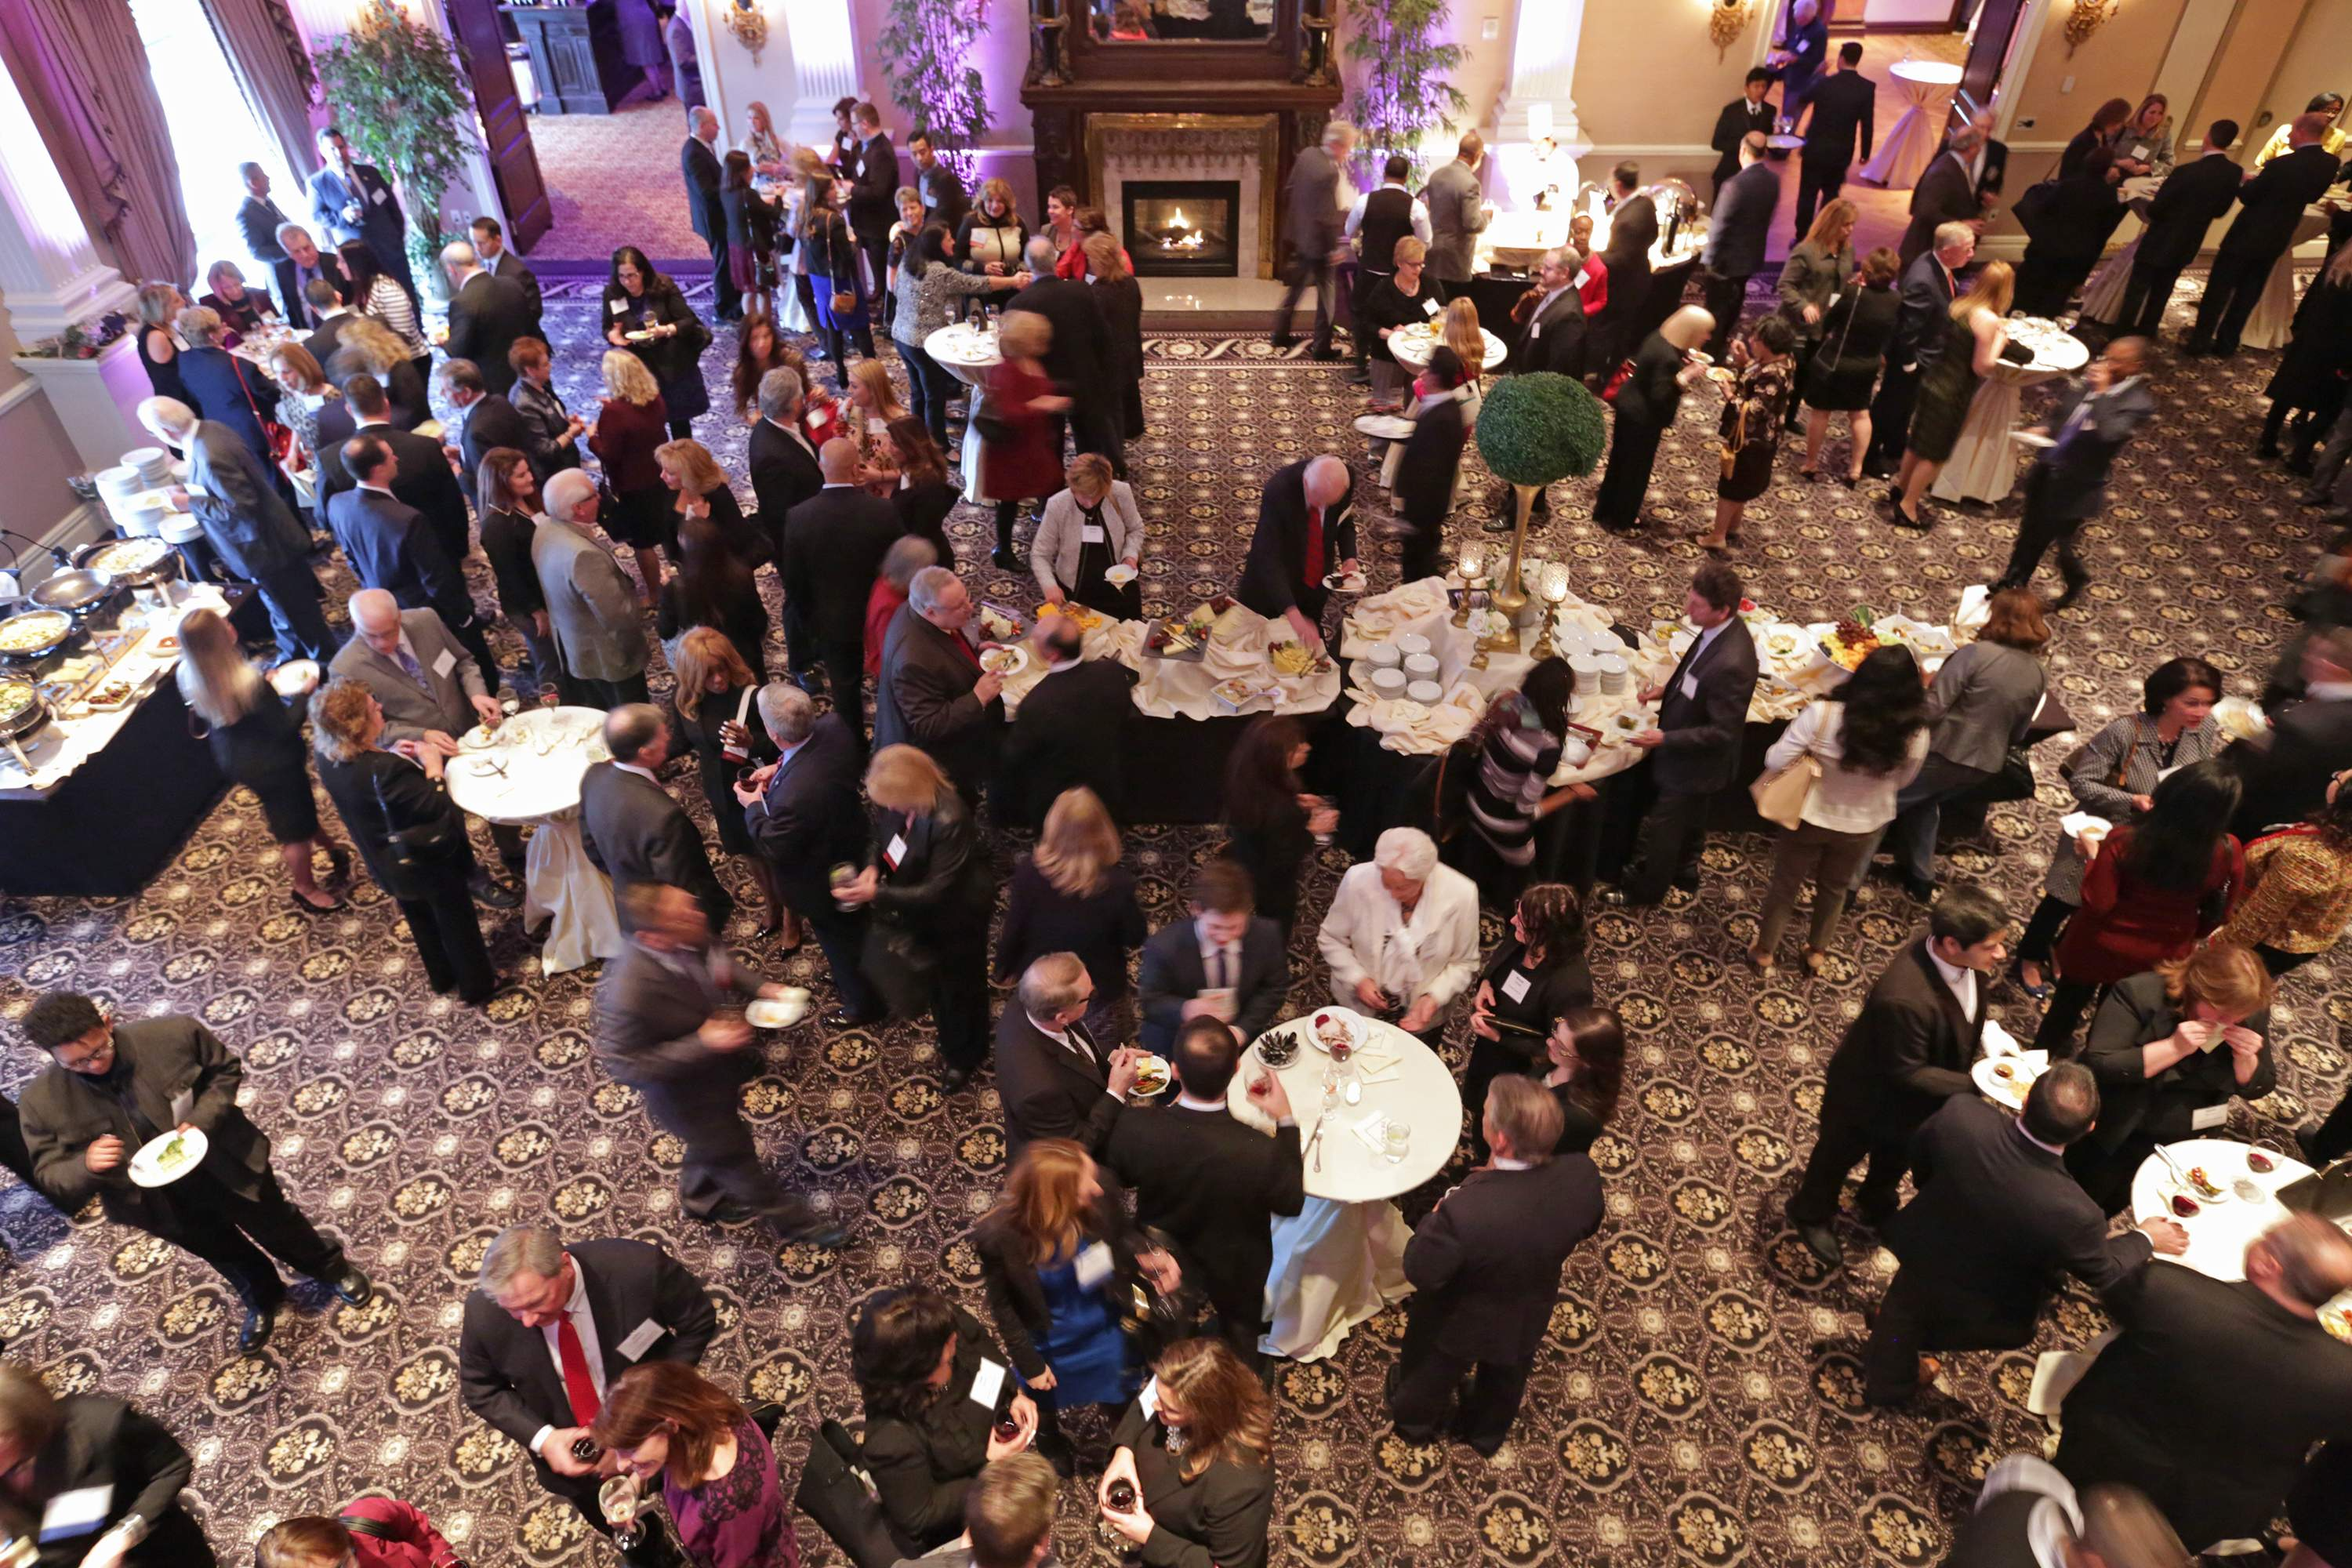 An aerial view of the cocktail reception of the Best 50 Women in Business event held on Monday at The Palace in Somerset.